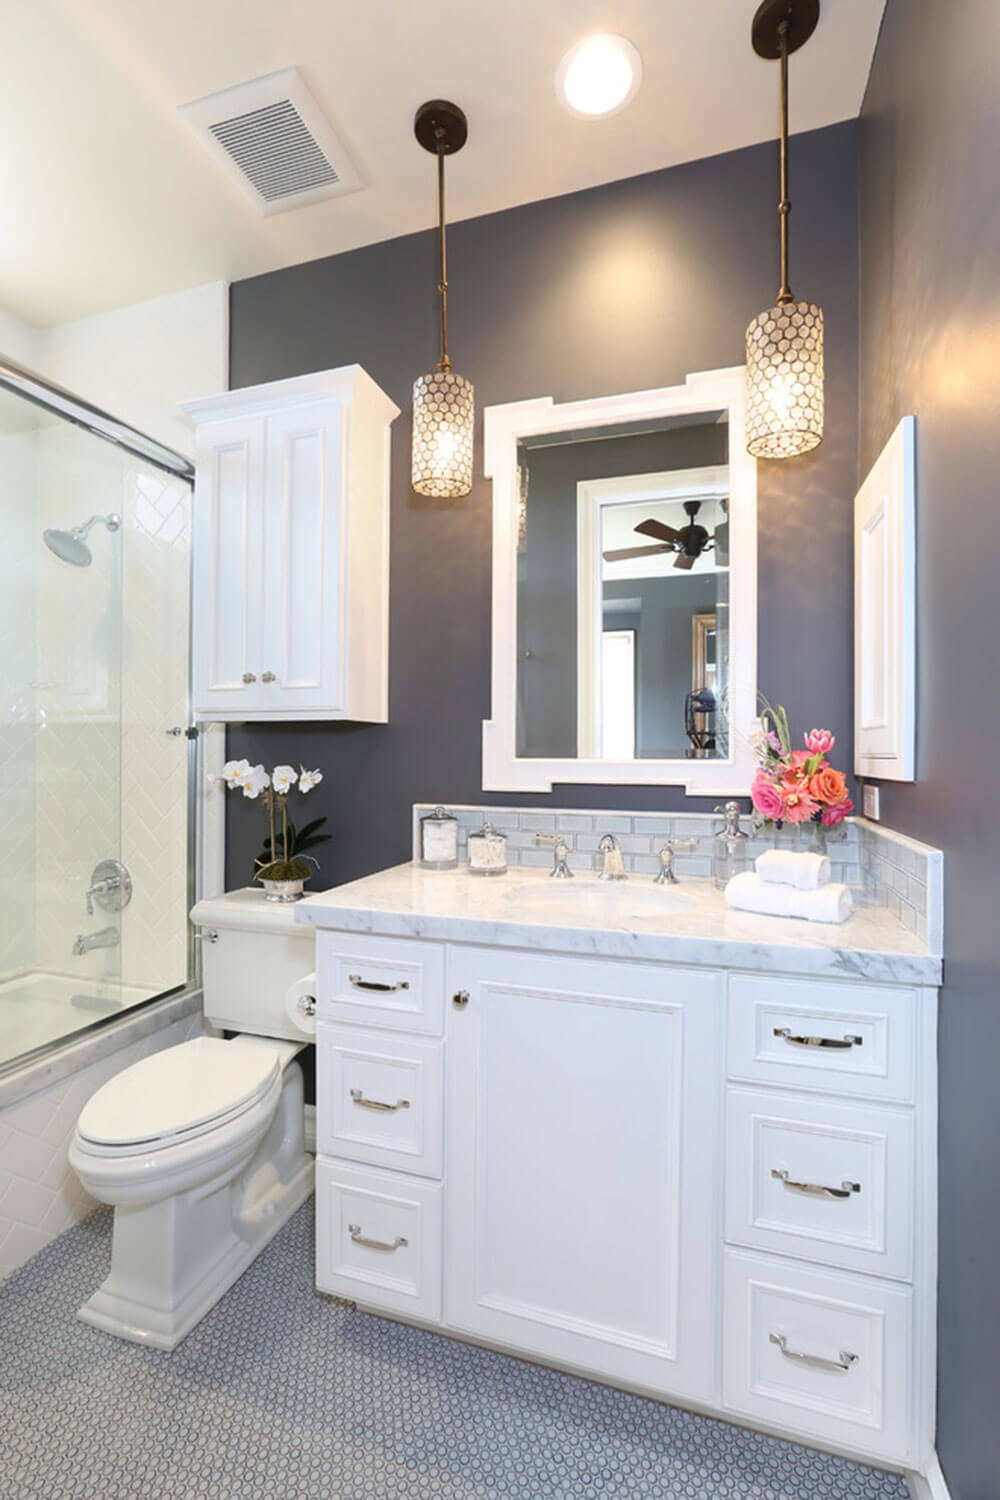 1. Uncluttered Color Scheme In Dark Gray And White